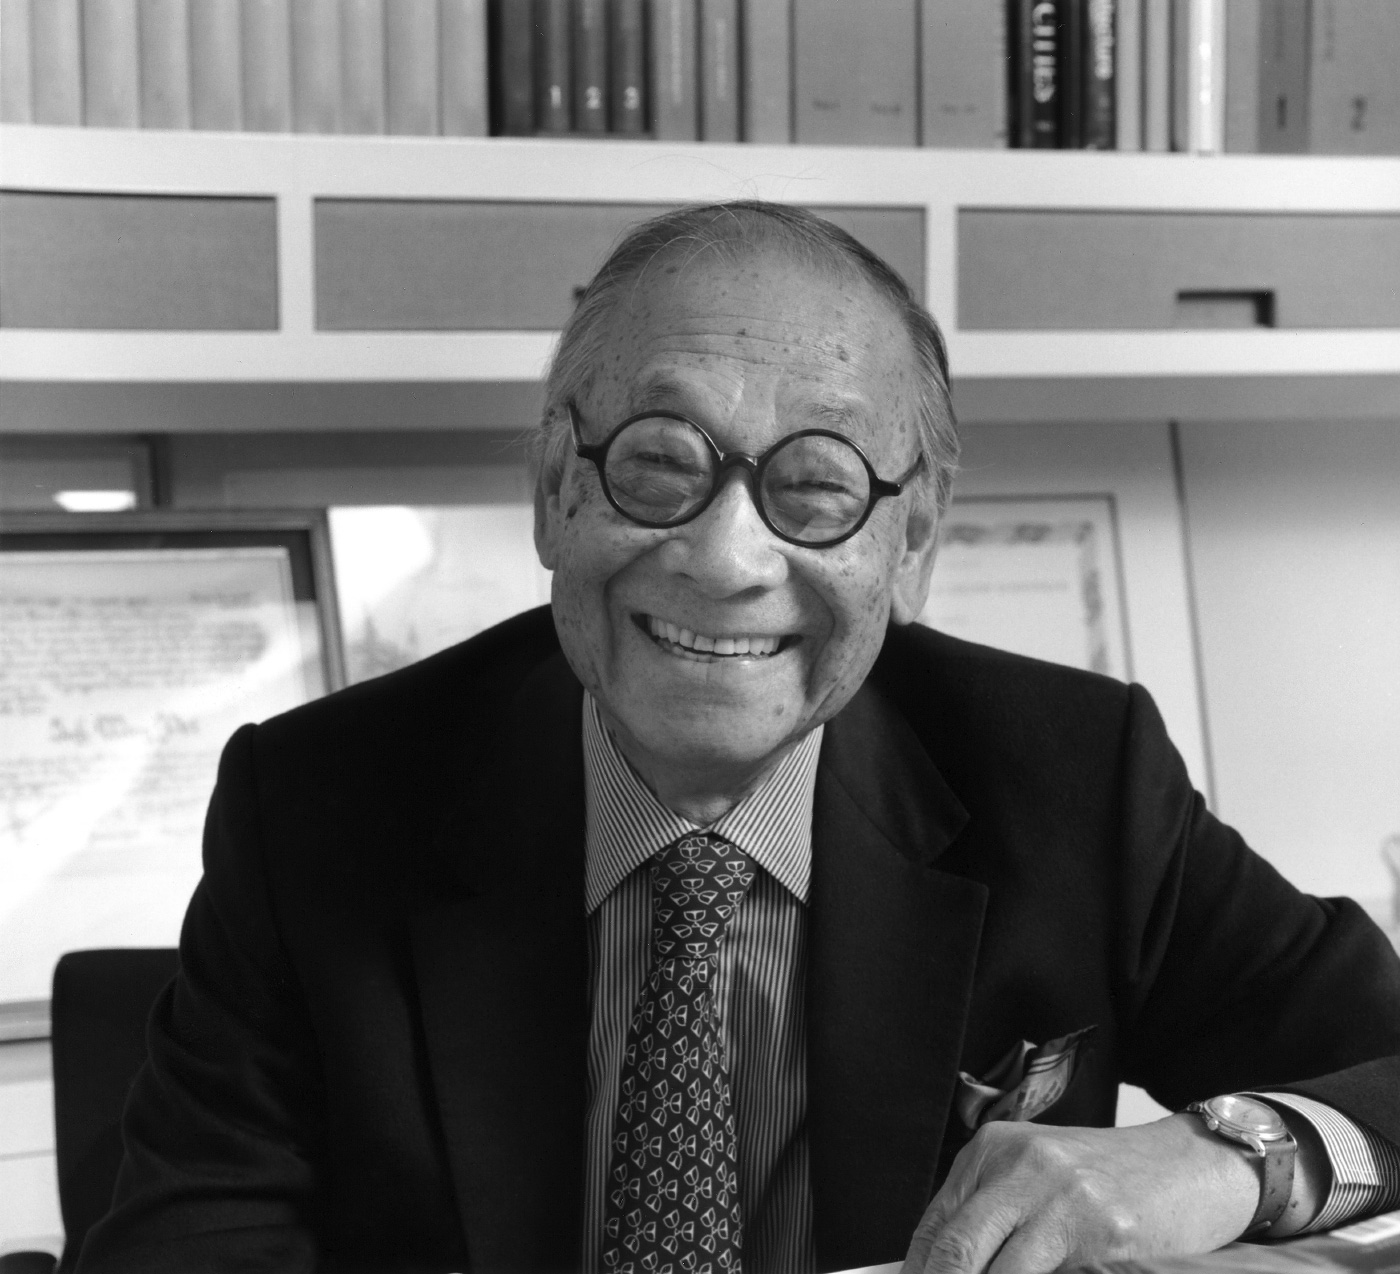 Photo an elderly Chinese man, I. M. Pei, in black and white